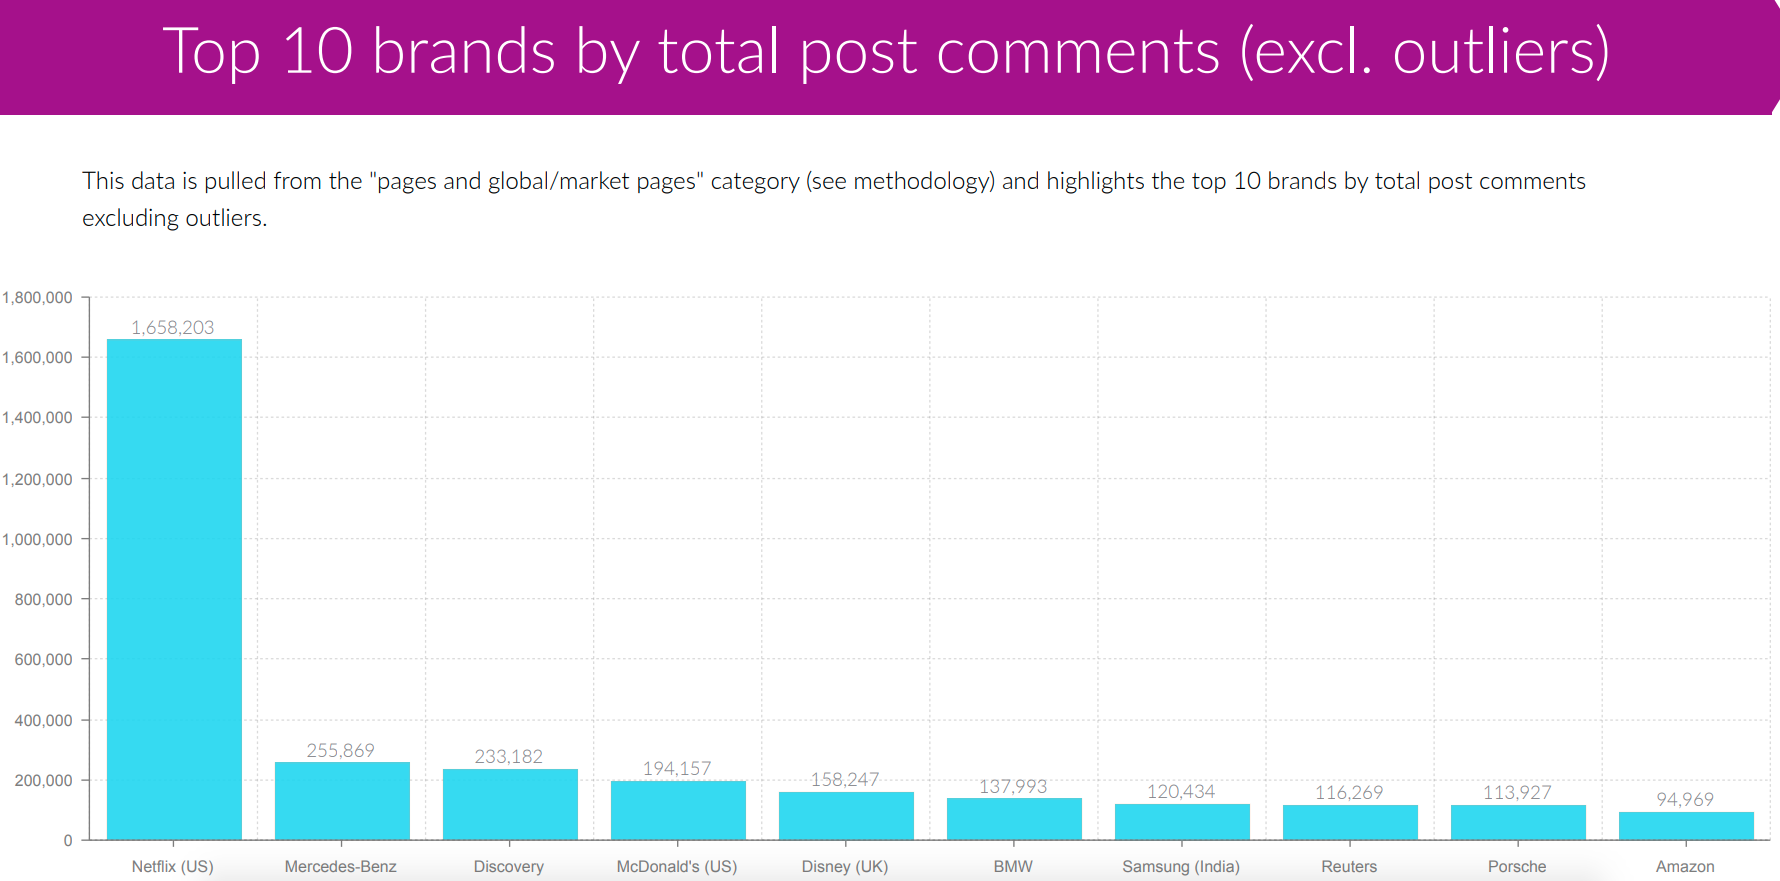 top 10 brands by total post comments